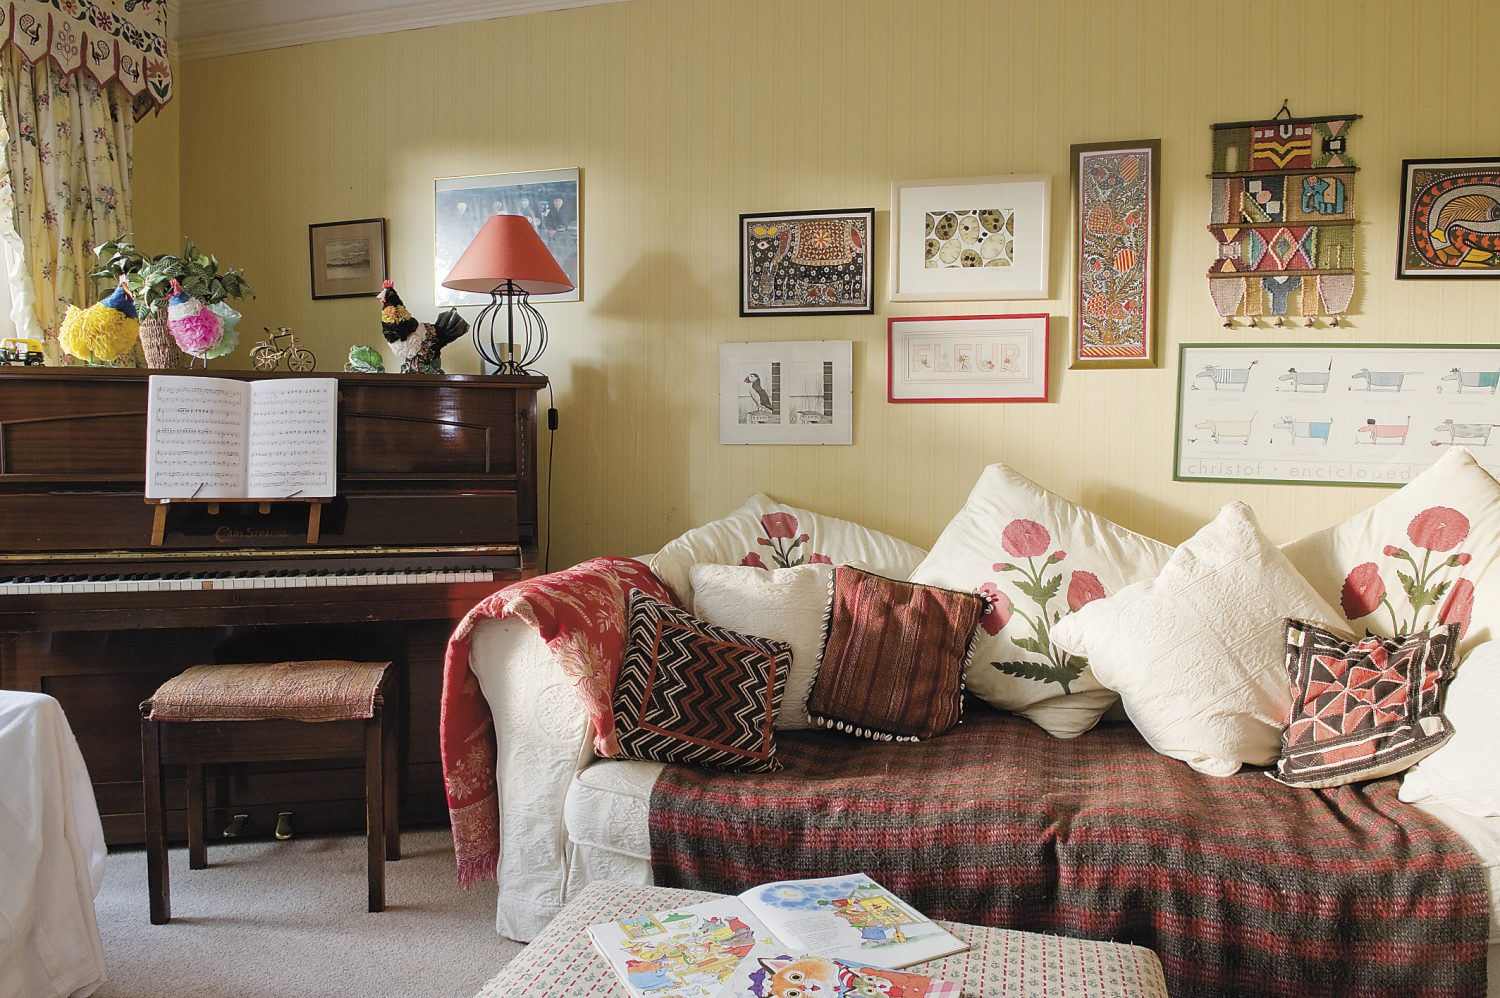 cushions, throws and artworks gathered on trips overseas add a splash of Eastern colour to a traditional Wealden hall house